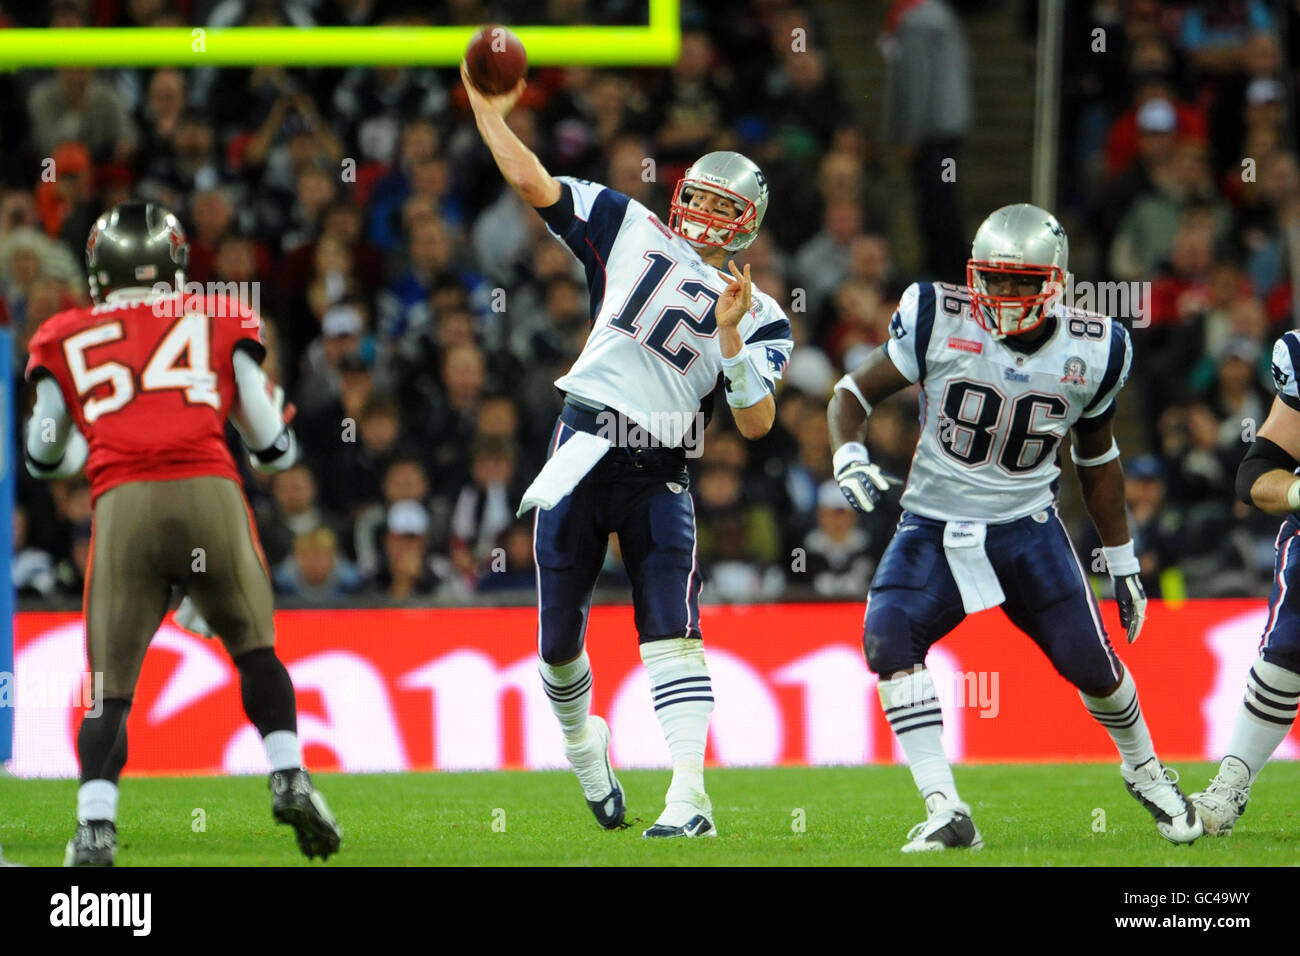 Football americano - NFL - New England Patriots v Tampa Bay Buccaneers - Wembley Stadium Immagini Stock